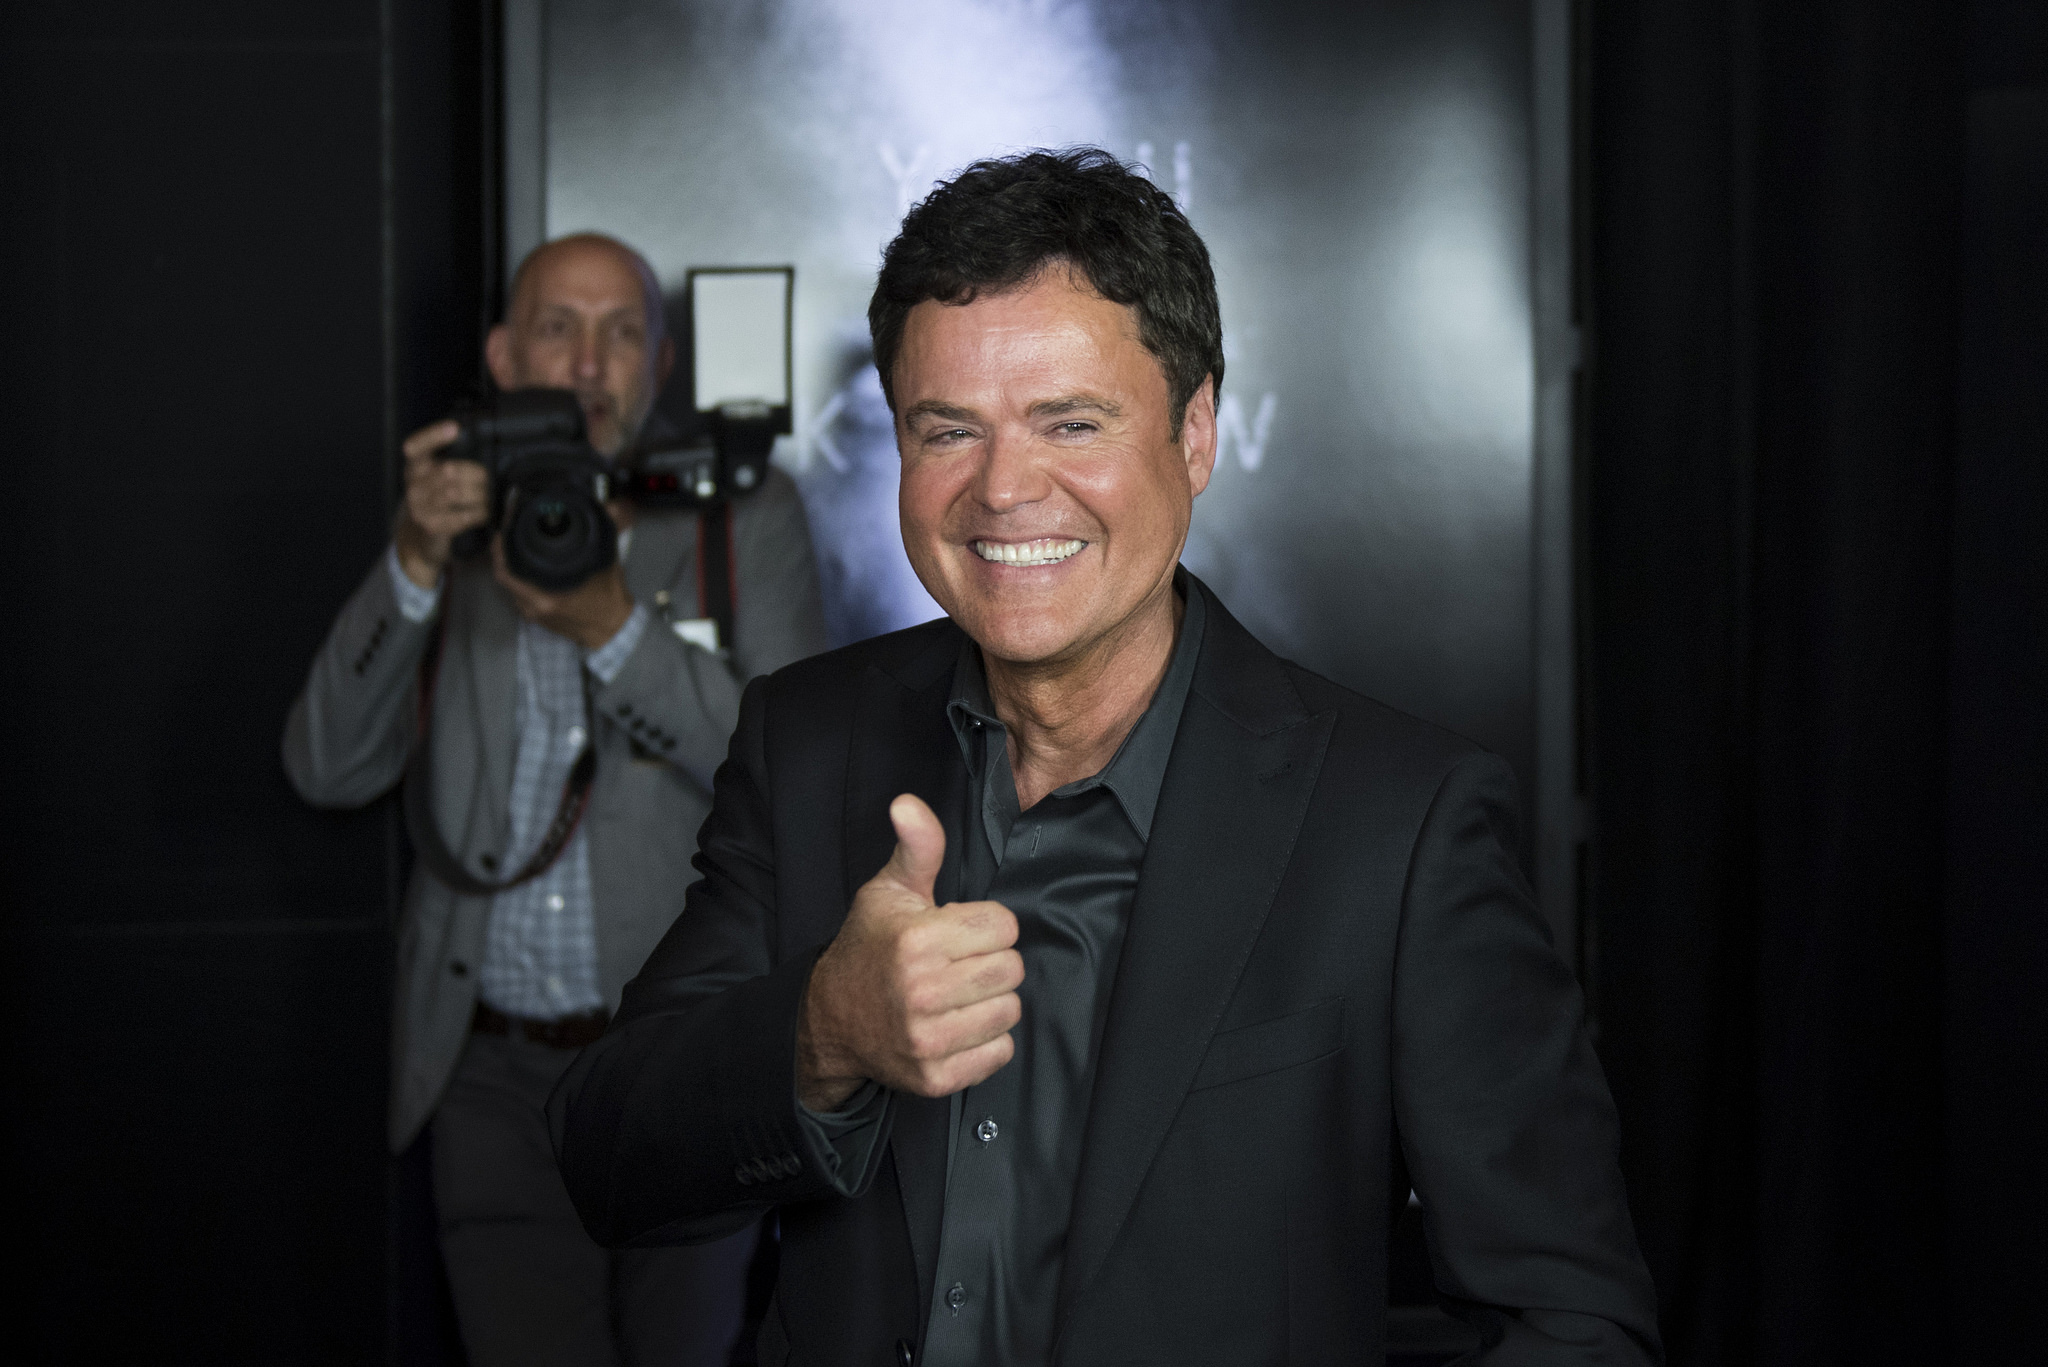 Donny Osmond poses on the red carpet ahead of the Las Vegas premiere for the film Jason Bourne at Caesars Palace hotel-casino Monday, July 18, 2016. Jason Ogulnik/Las Vegas Review-Journal